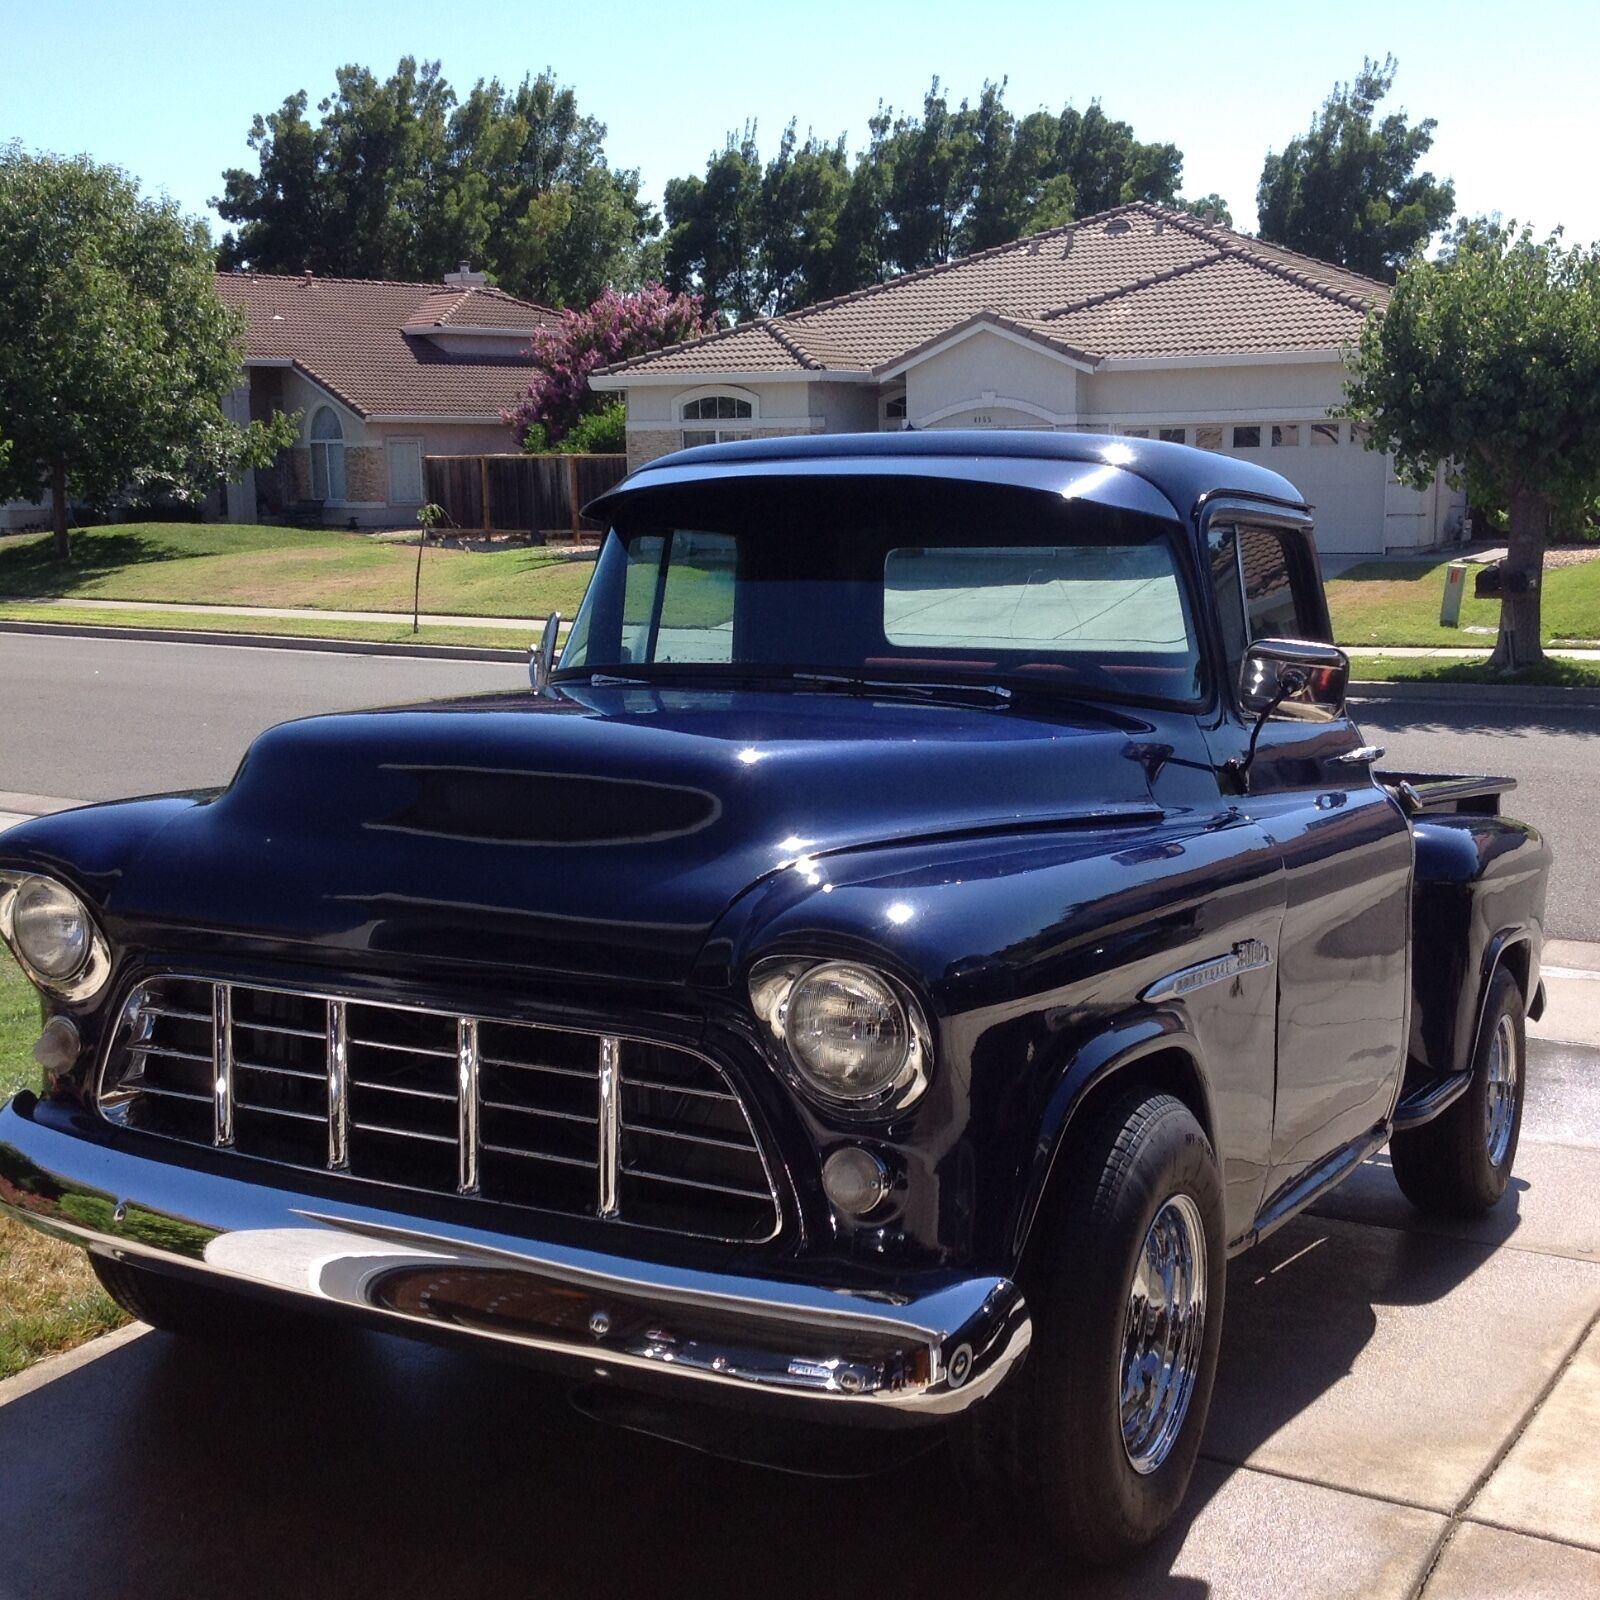 1955 chevy 3100 truck used chevrolet other pickups for sale in fairfield california search. Black Bedroom Furniture Sets. Home Design Ideas